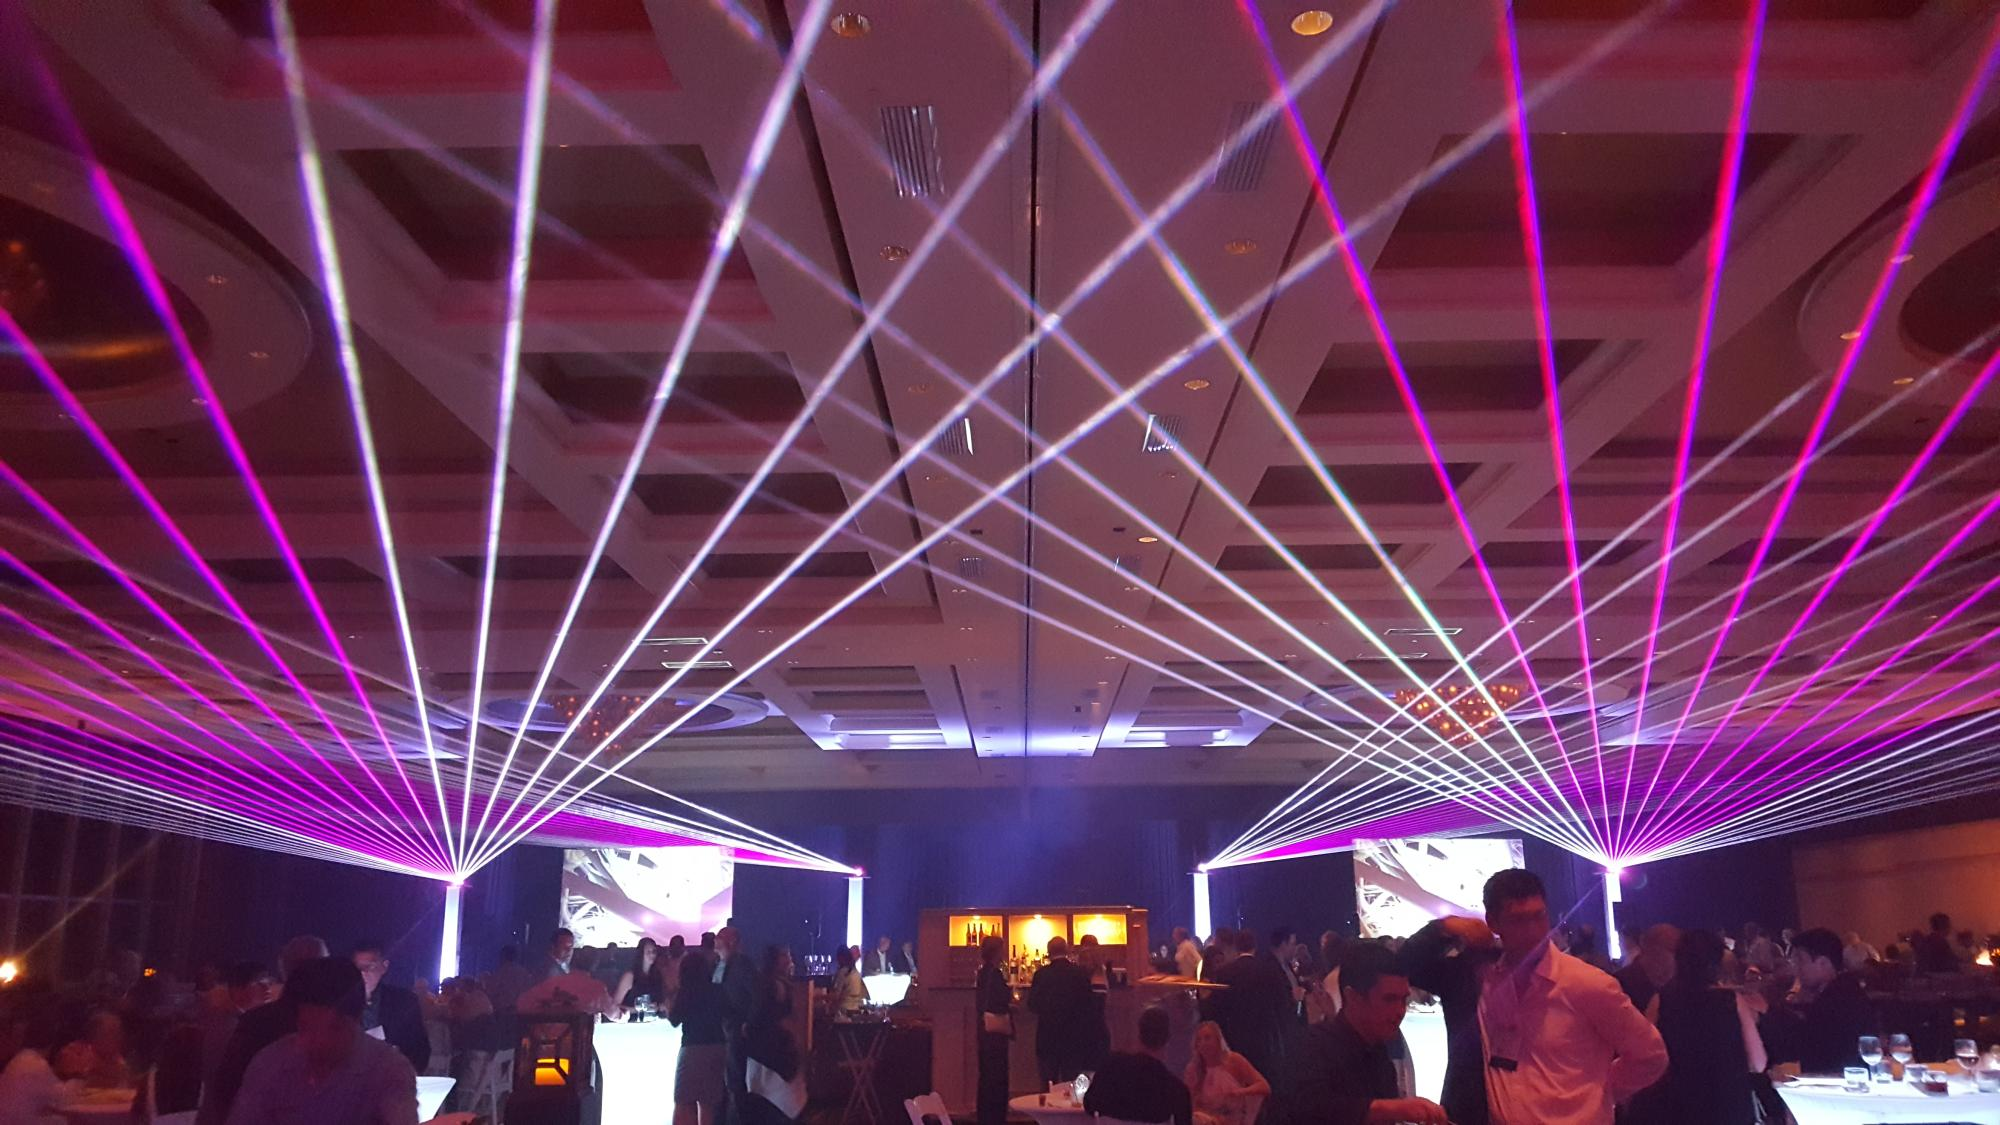 Pink lasers for corporate events by United Laser